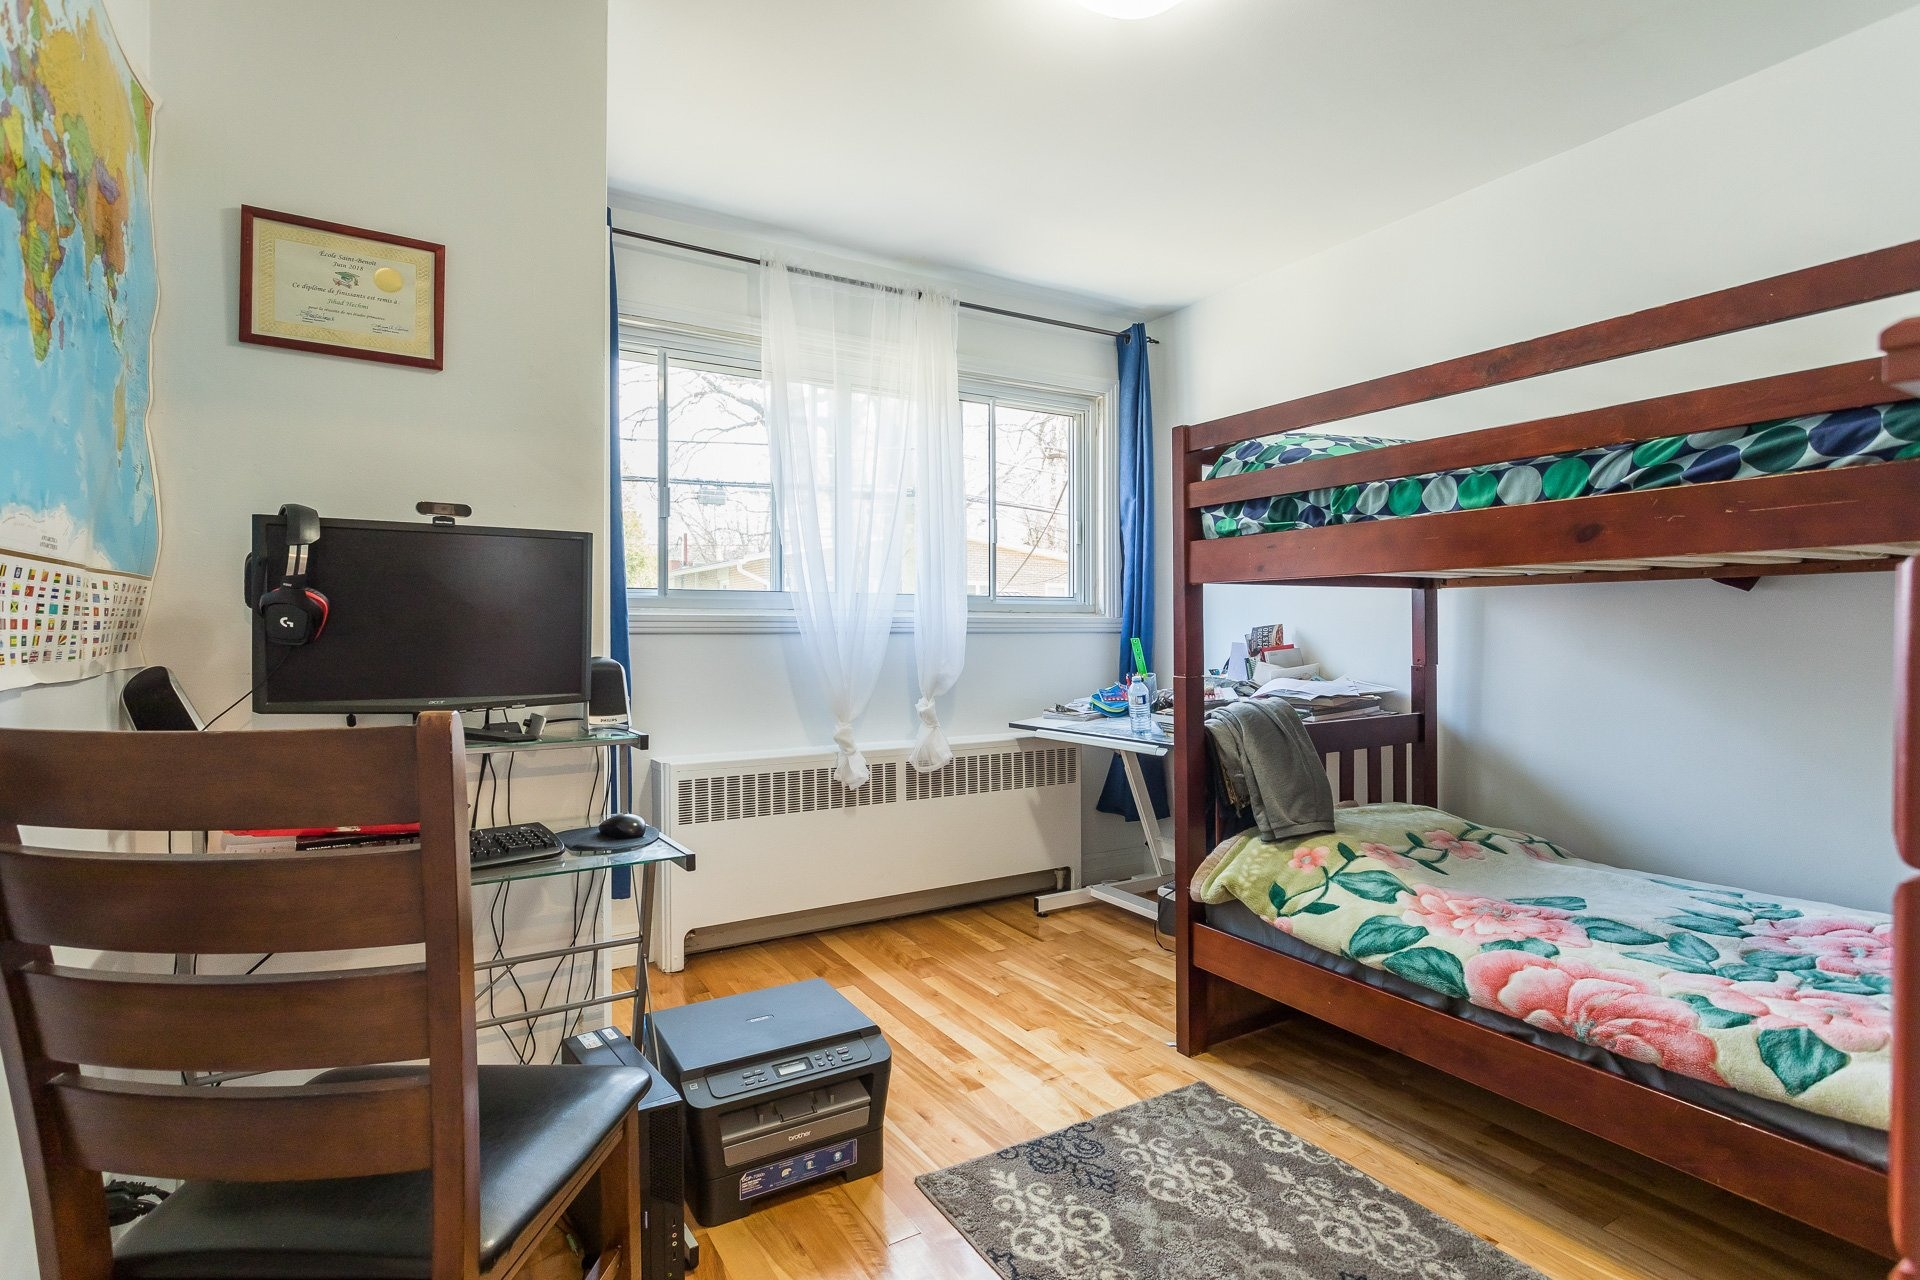 image 11 - Duplex For sale Ahuntsic-Cartierville Montréal  - 8 rooms